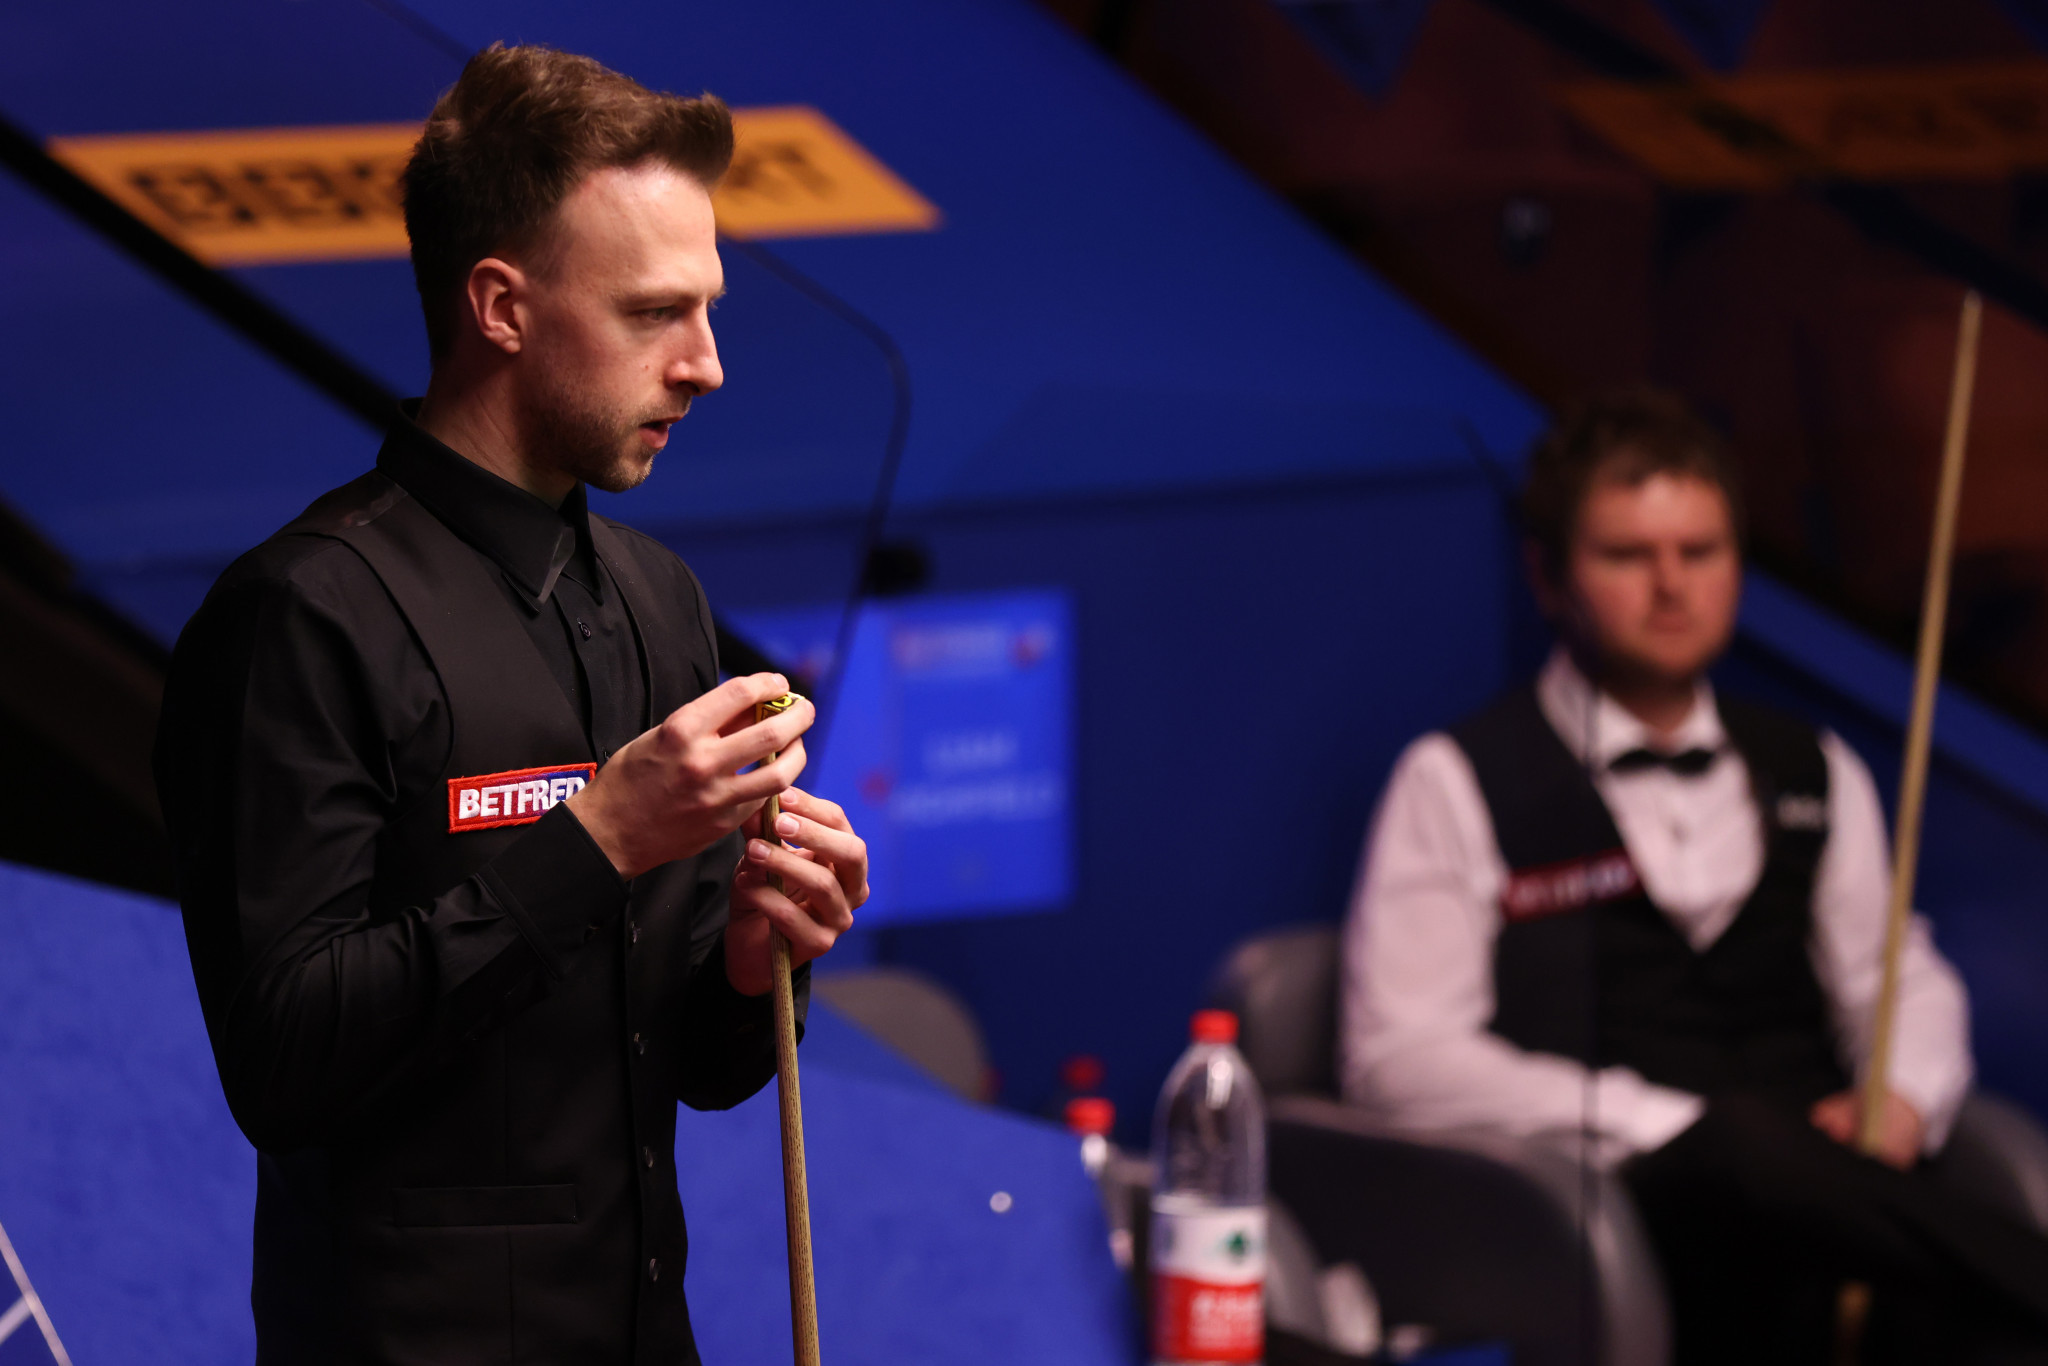 Judd Trump made a string start at the Crucible Theatre in Sheffield ©Getty Images